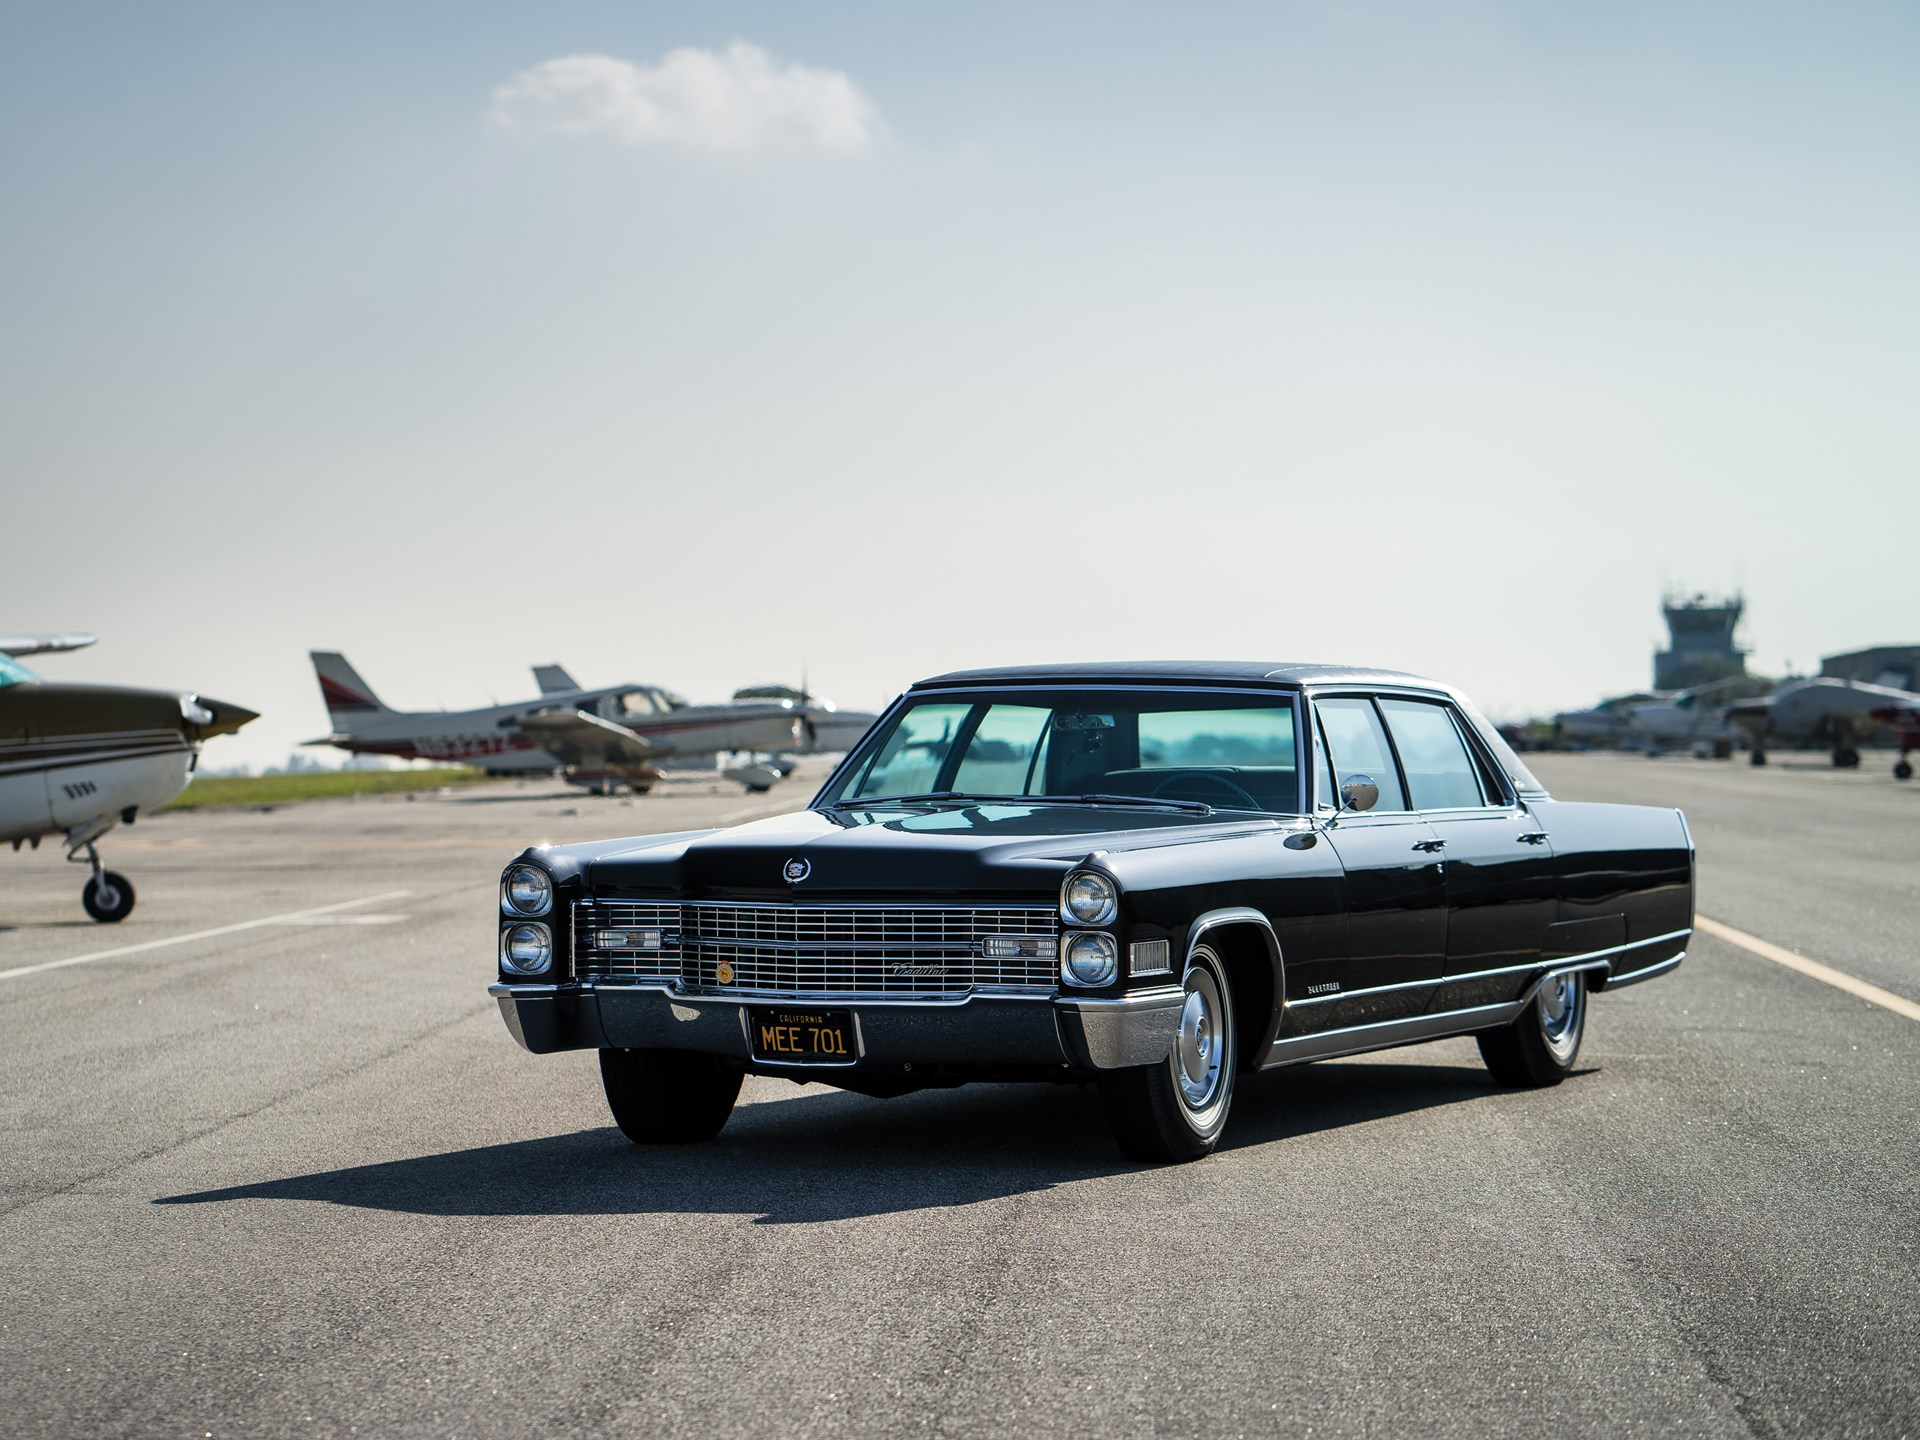 rm sotheby's - 1966 cadillac fleetwood sixty special brougham